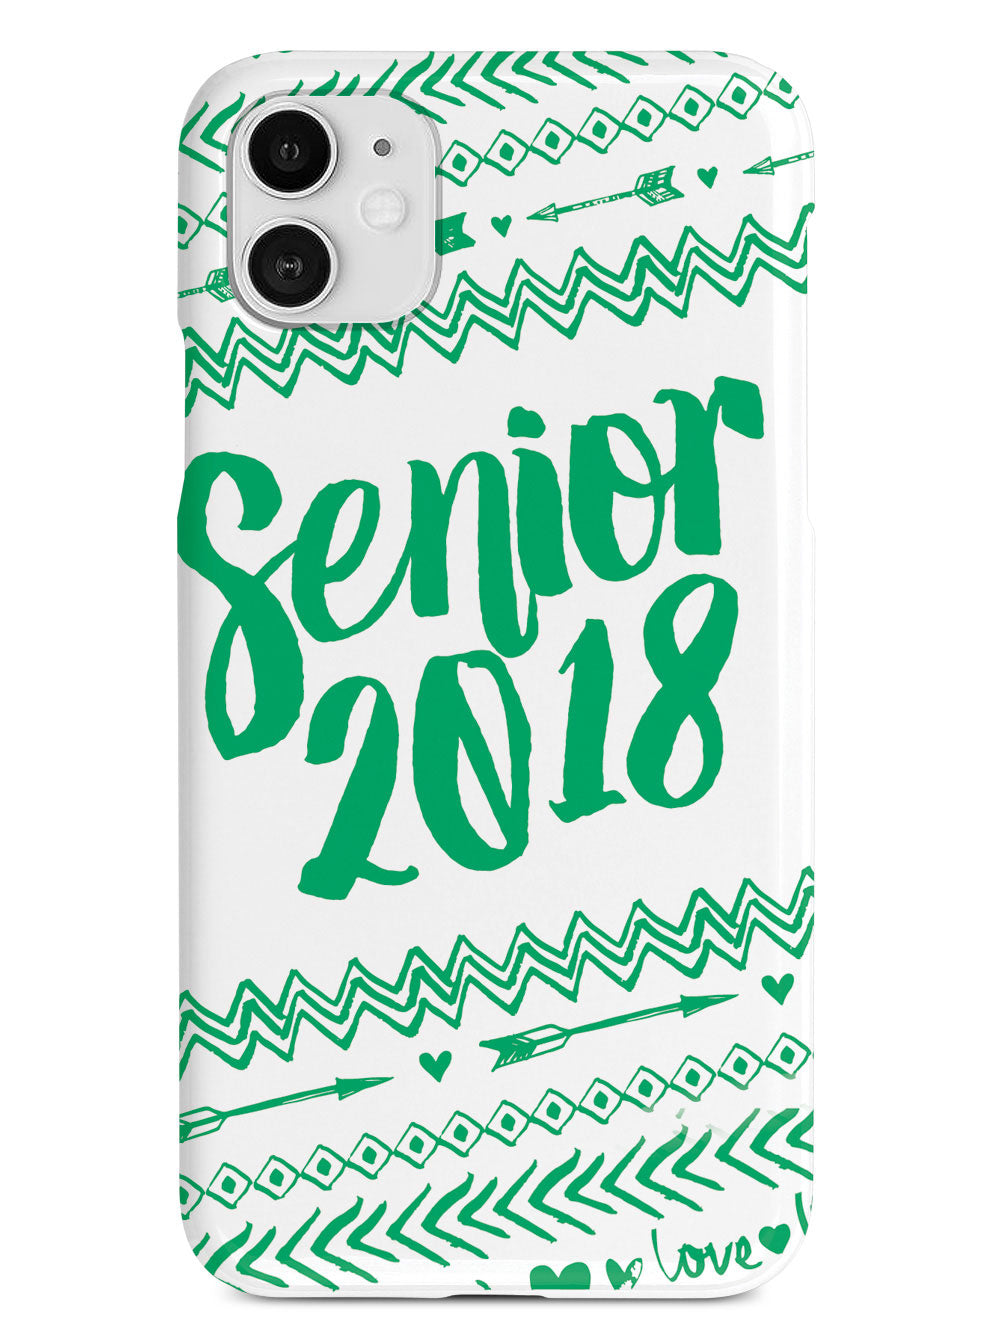 Senior 2018 - Green Case